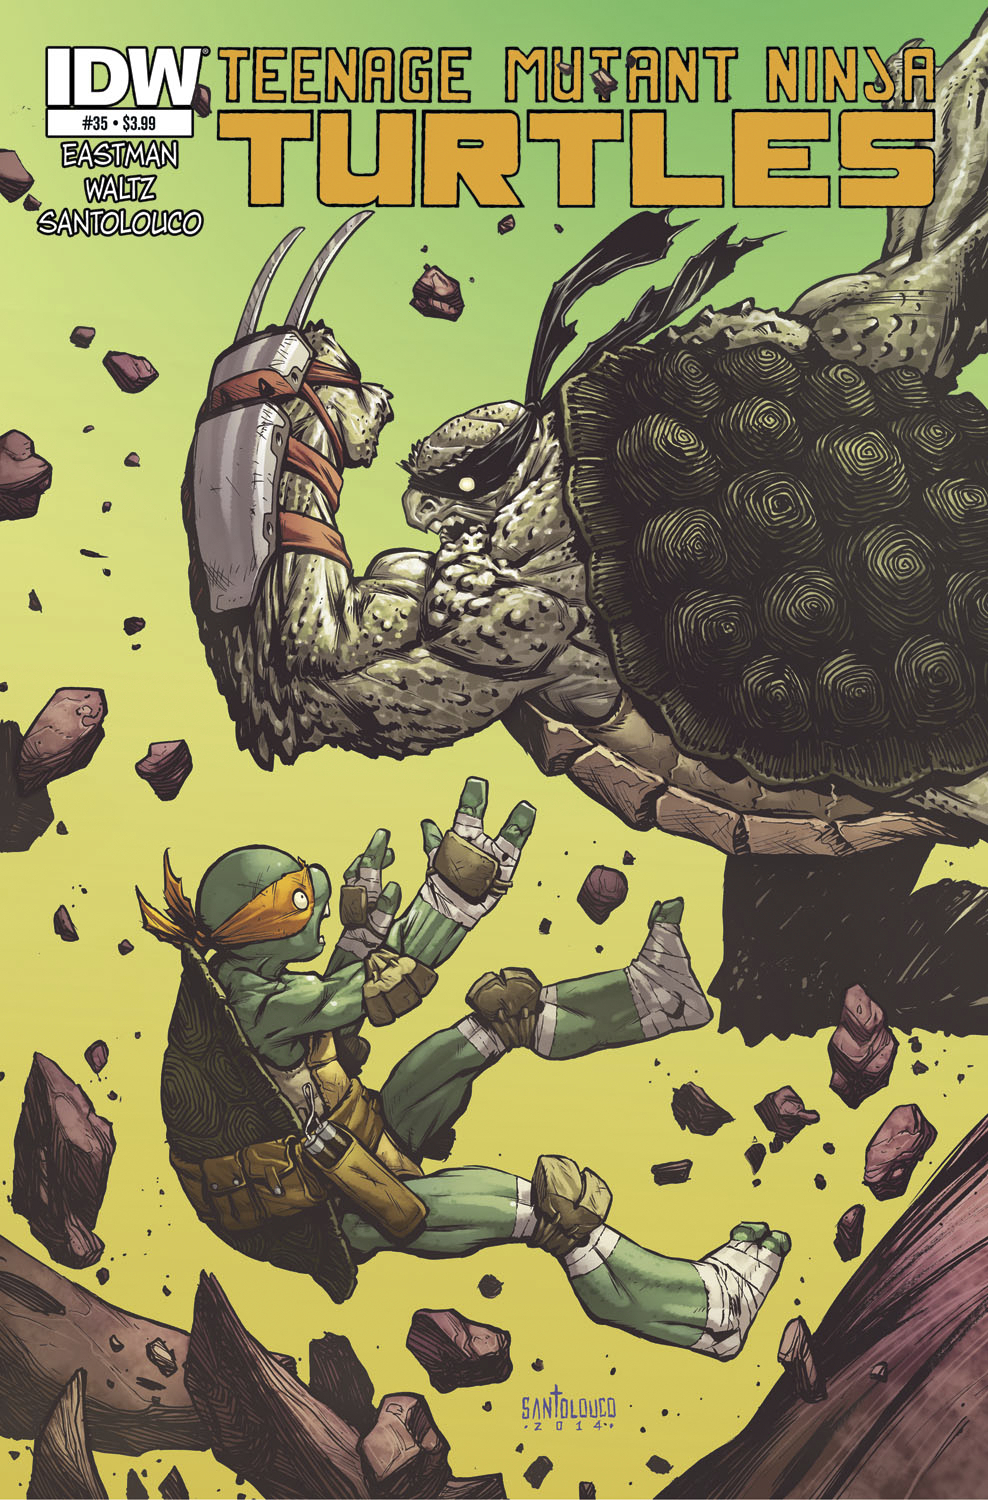 TMNT ONGOING #35